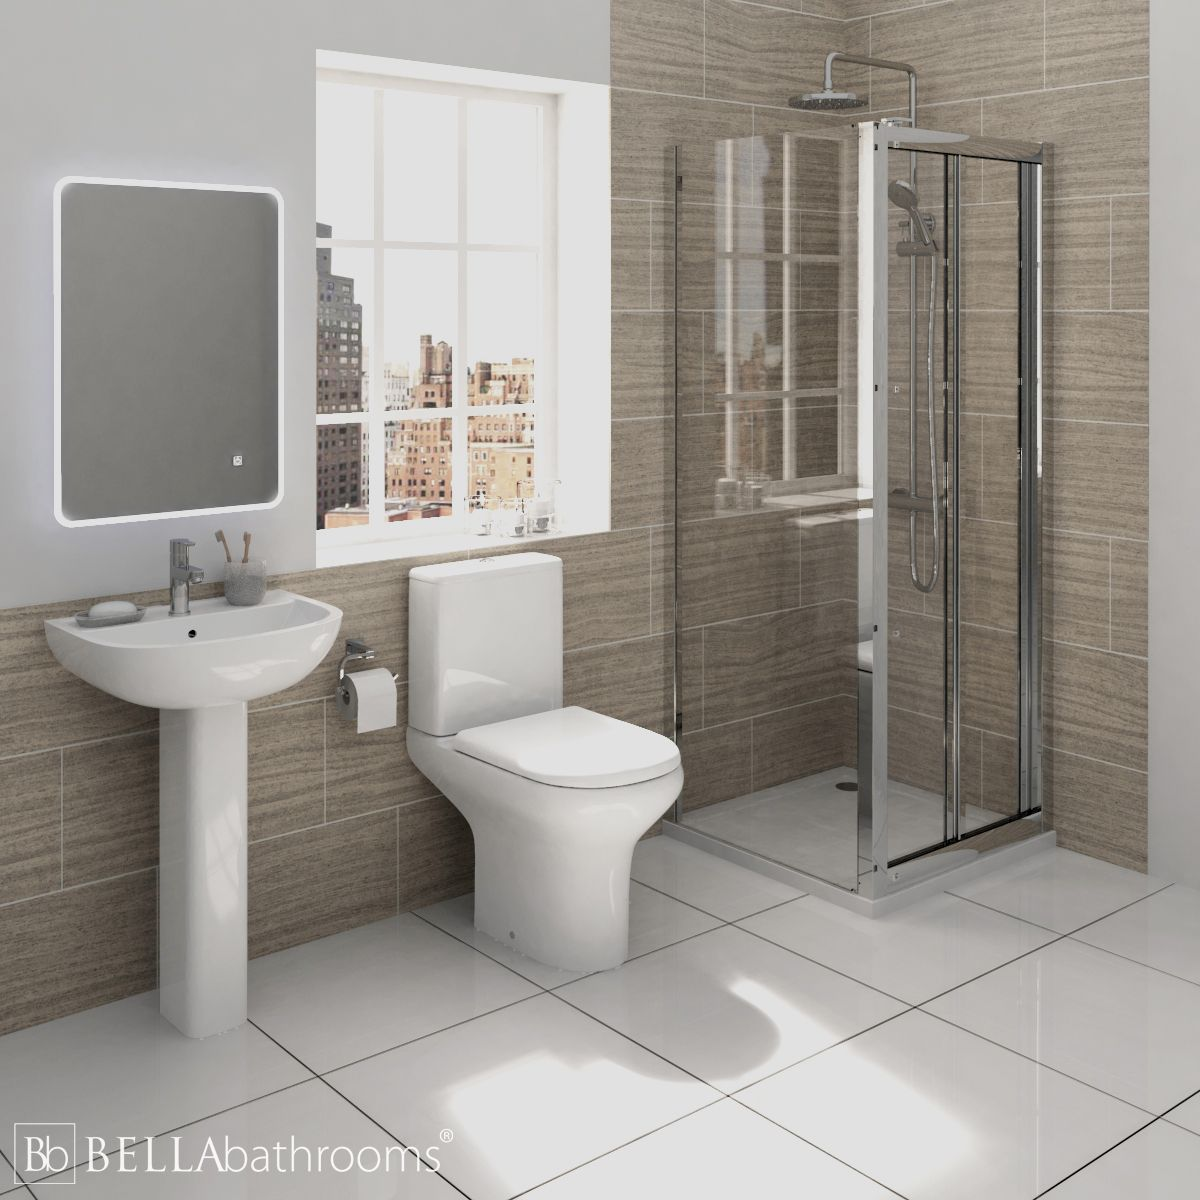 RAK Compact Shower Suite with Pacific Bi-Fold Door Shower Enclosure